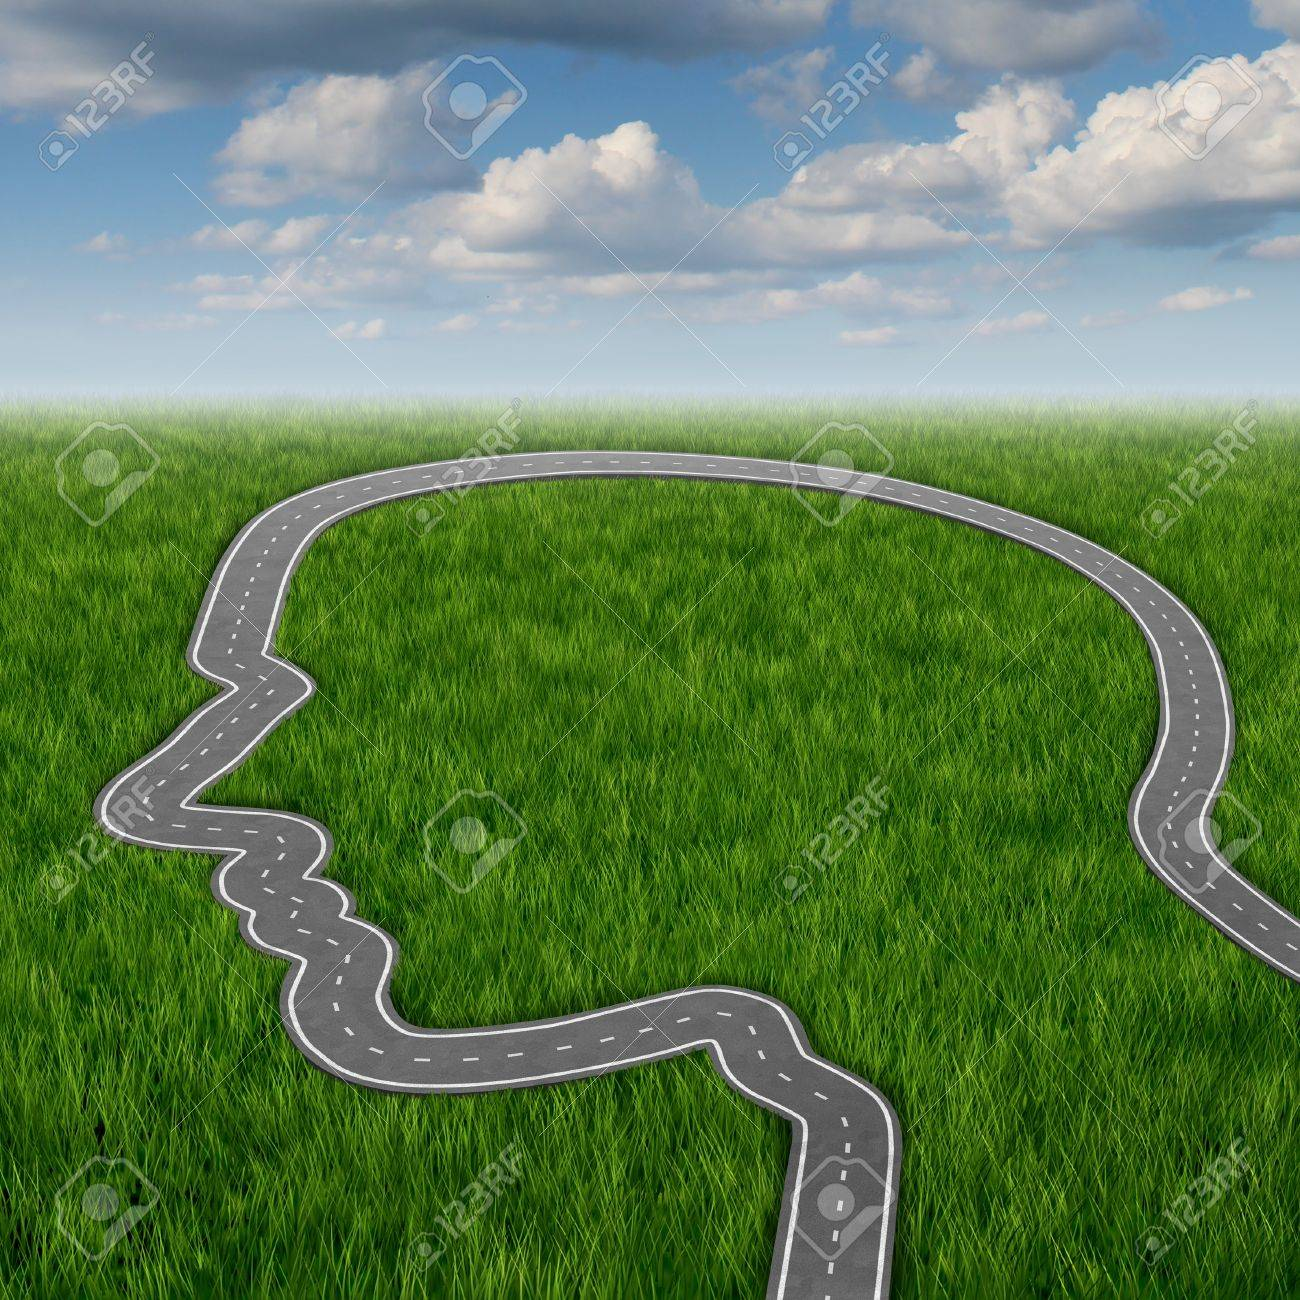 career path and business planning decisions through education career path and business planning decisions through education and searching for financial opportunities as a road